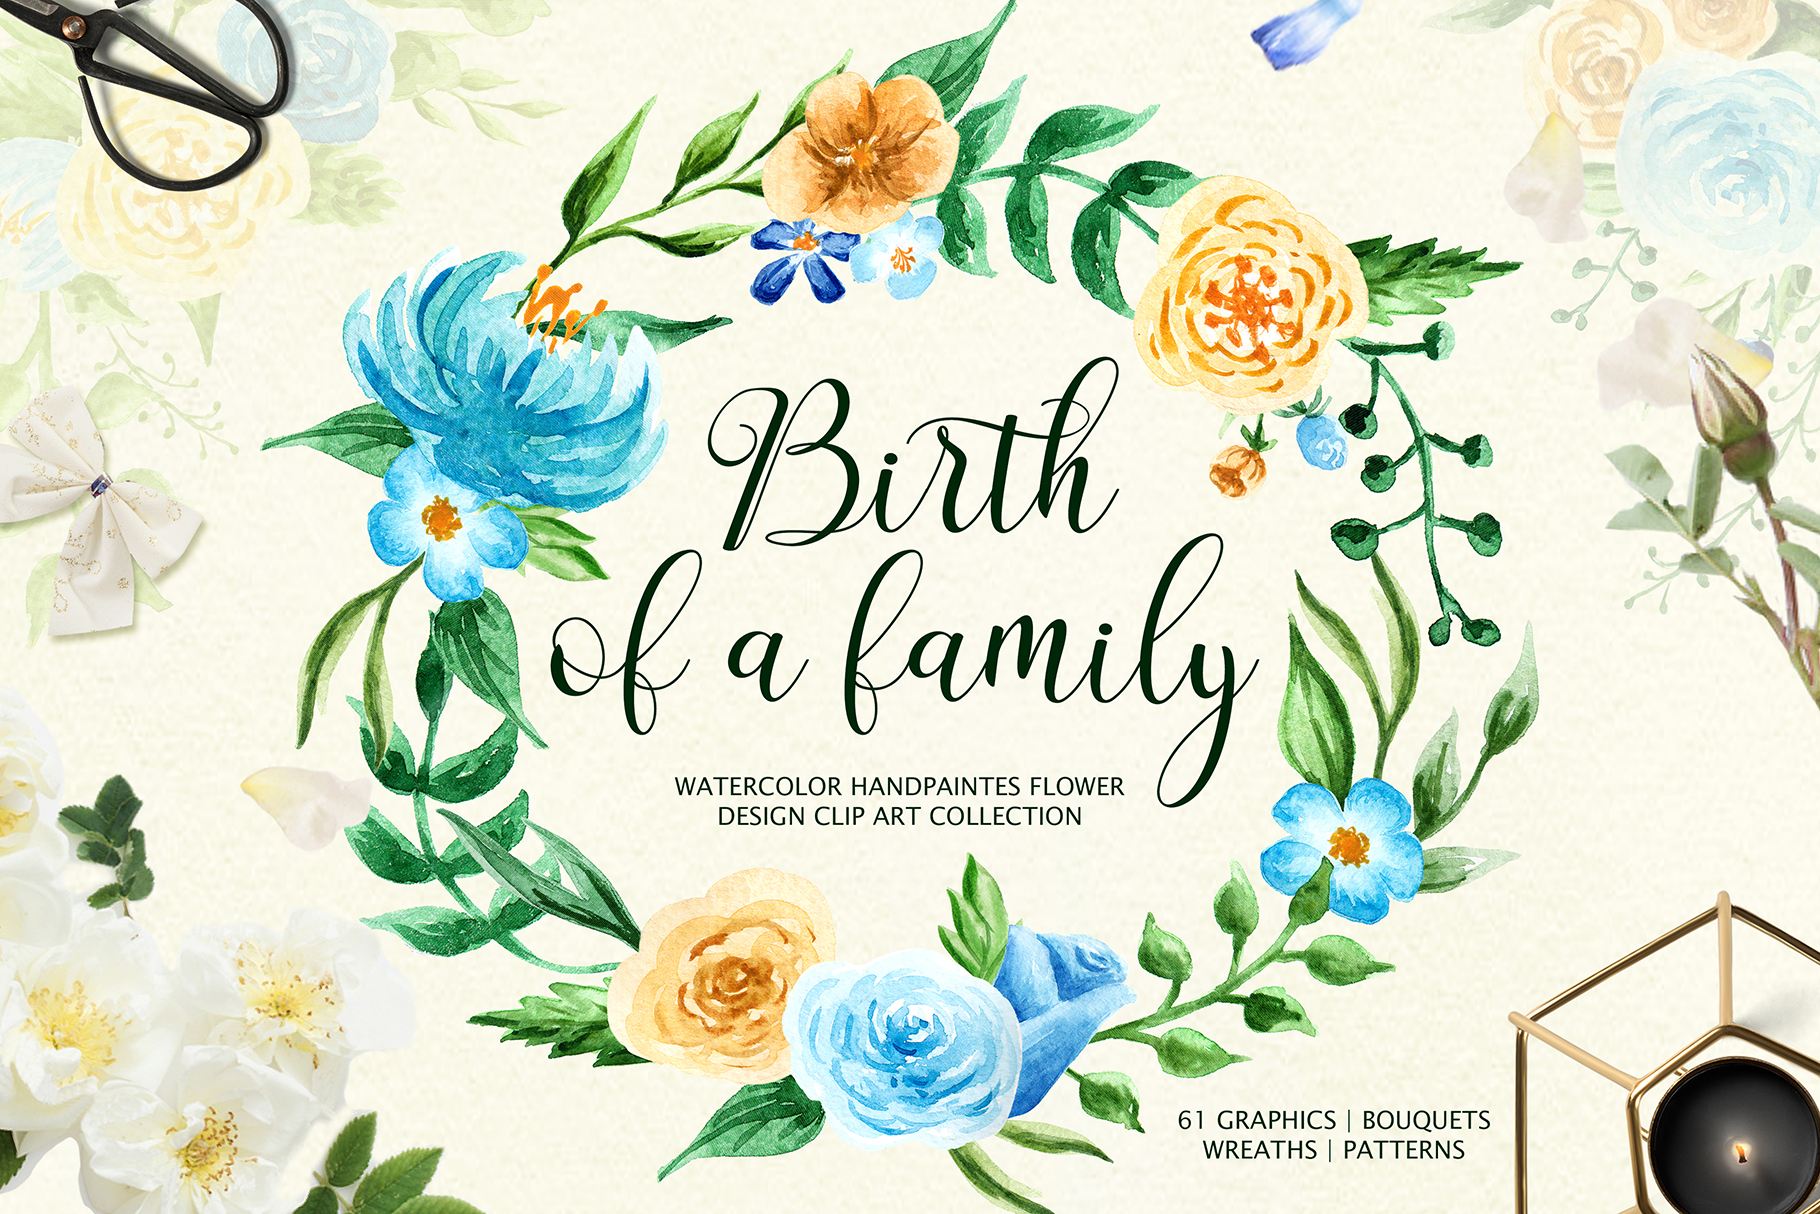 Birth of Watercolor Flower Set Graphic By tregubova.jul